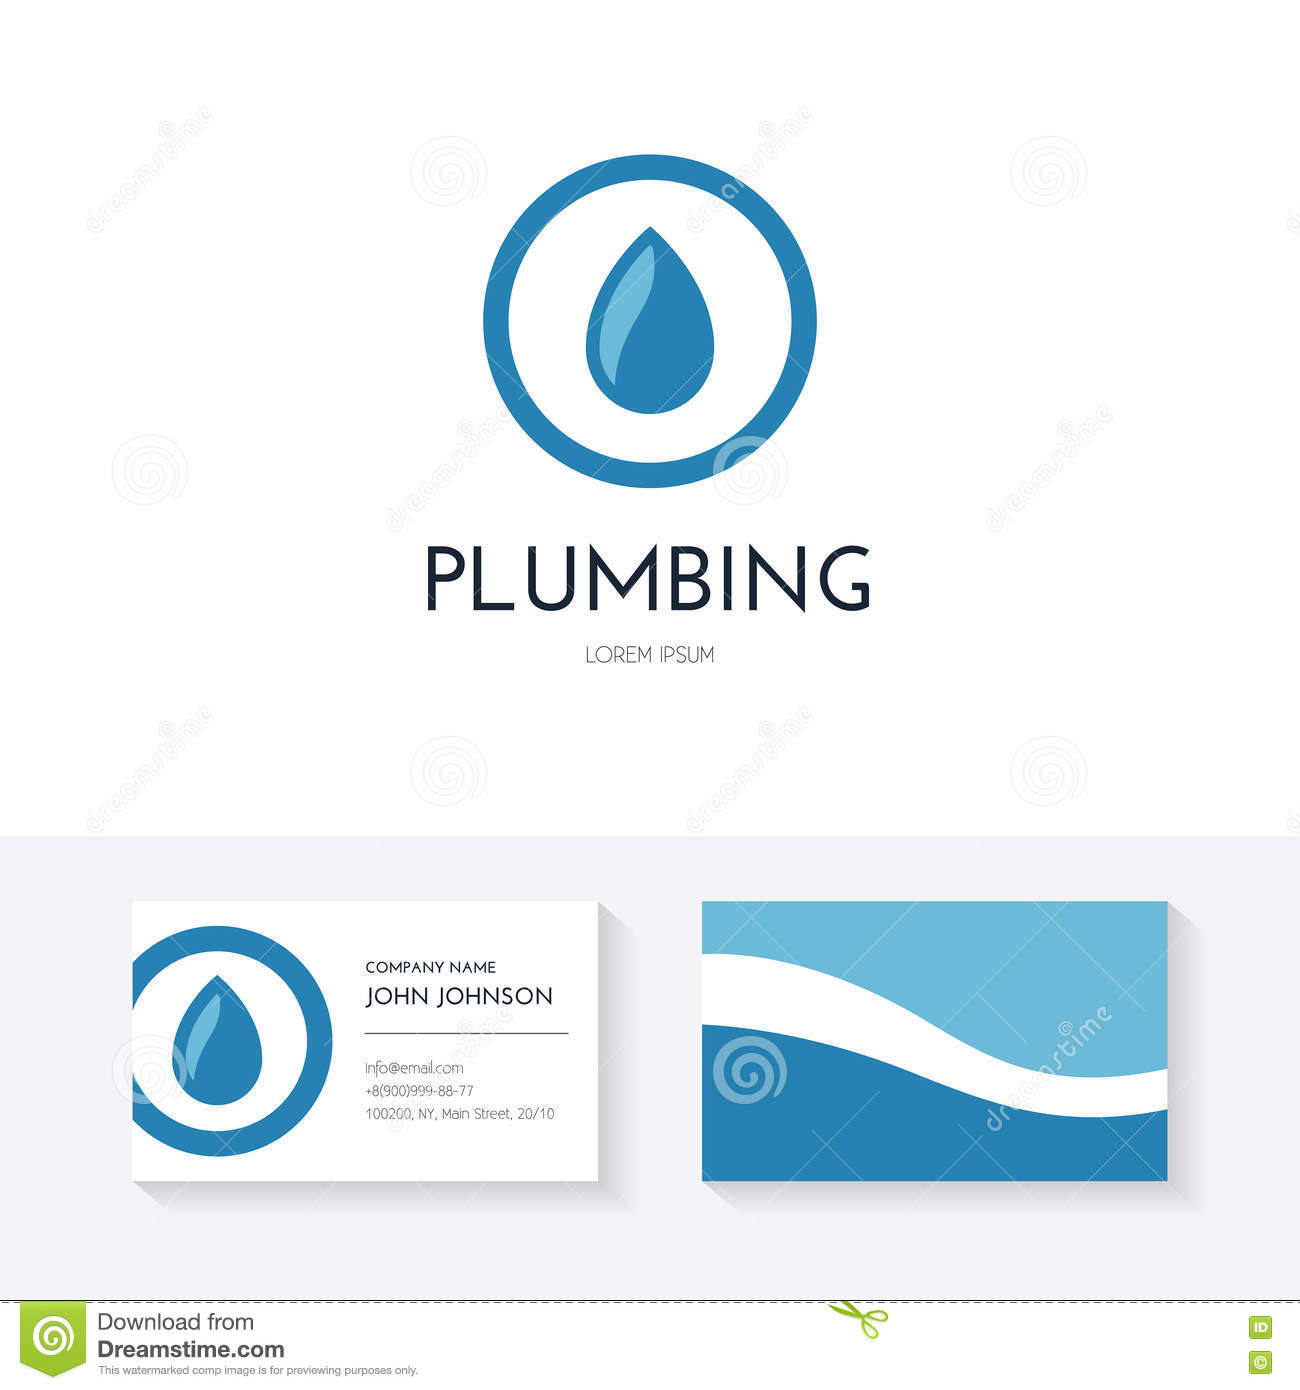 Plumbing Stock Vector Illustration Of Piping Layout 72689338 Pictures Business Identity Collection With Card And Logo Made In Modern Flat Style For Company Or Handyman